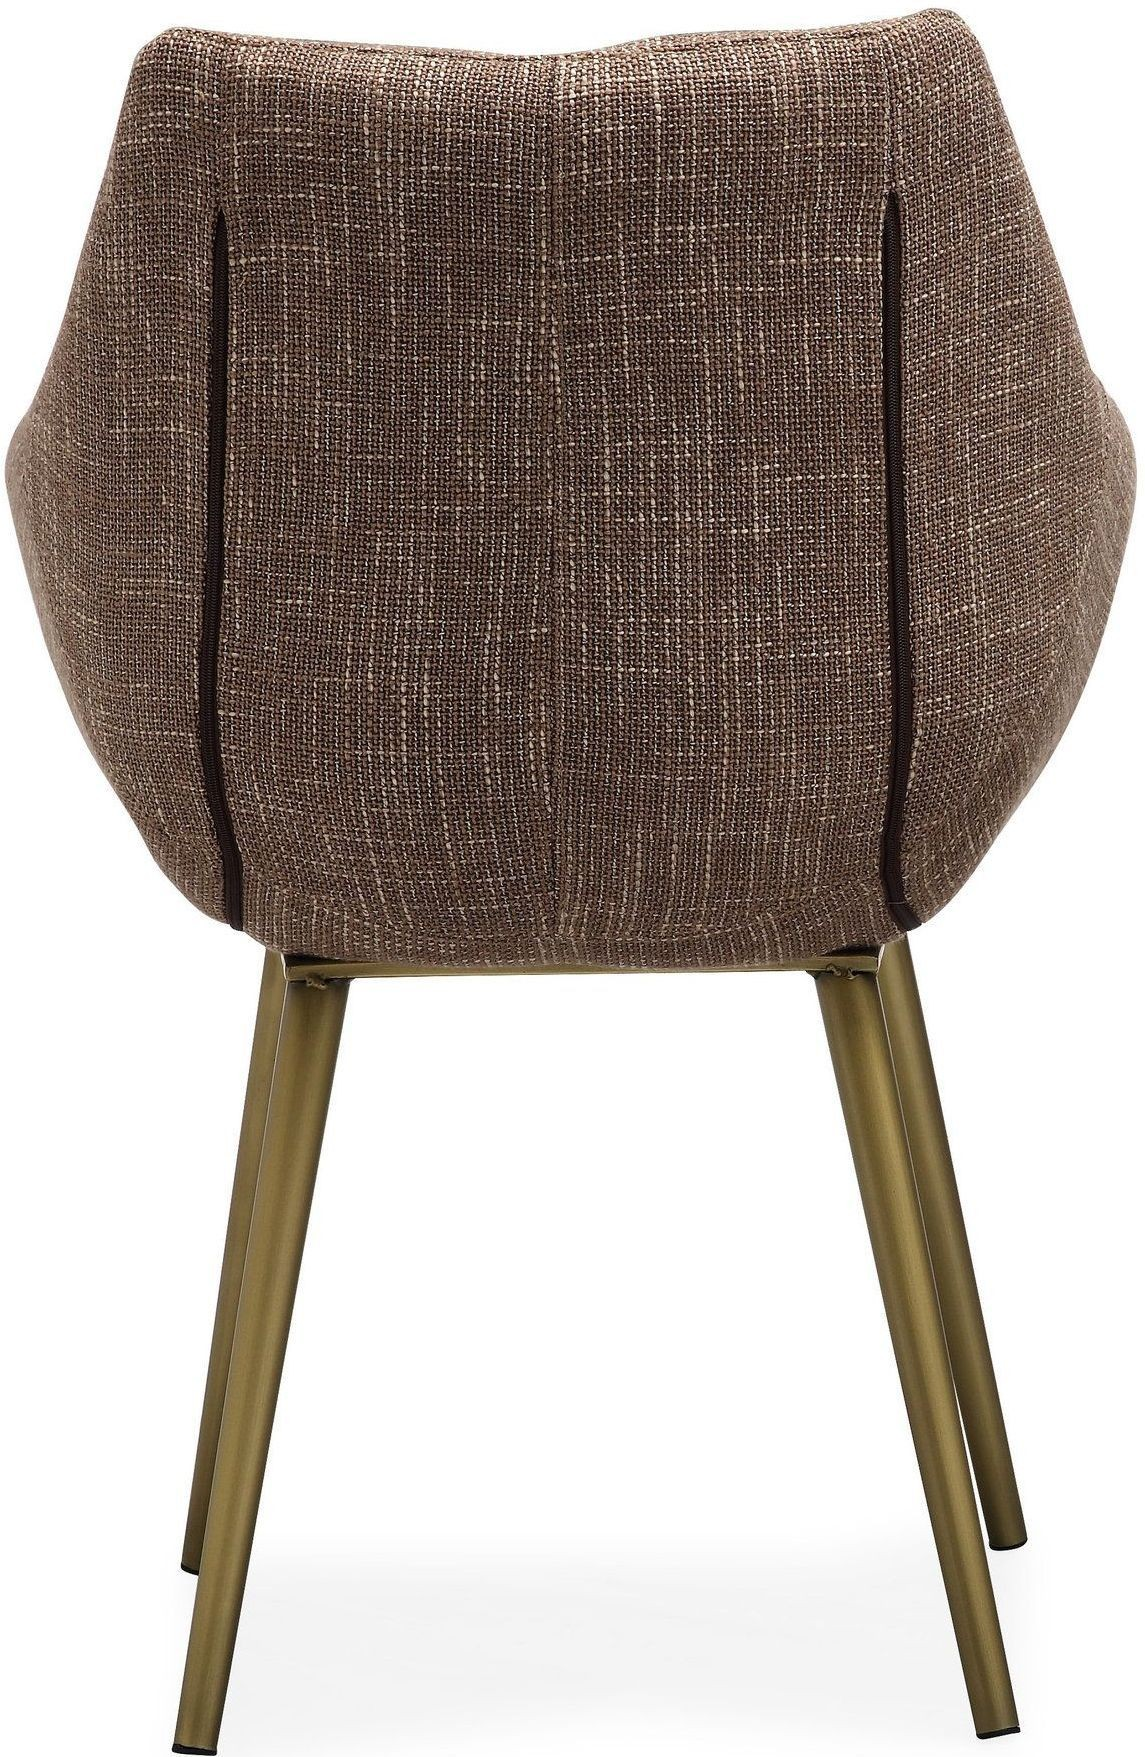 Tweed Chair Finn Brown Tweed Chair G5457 Tov Furniture